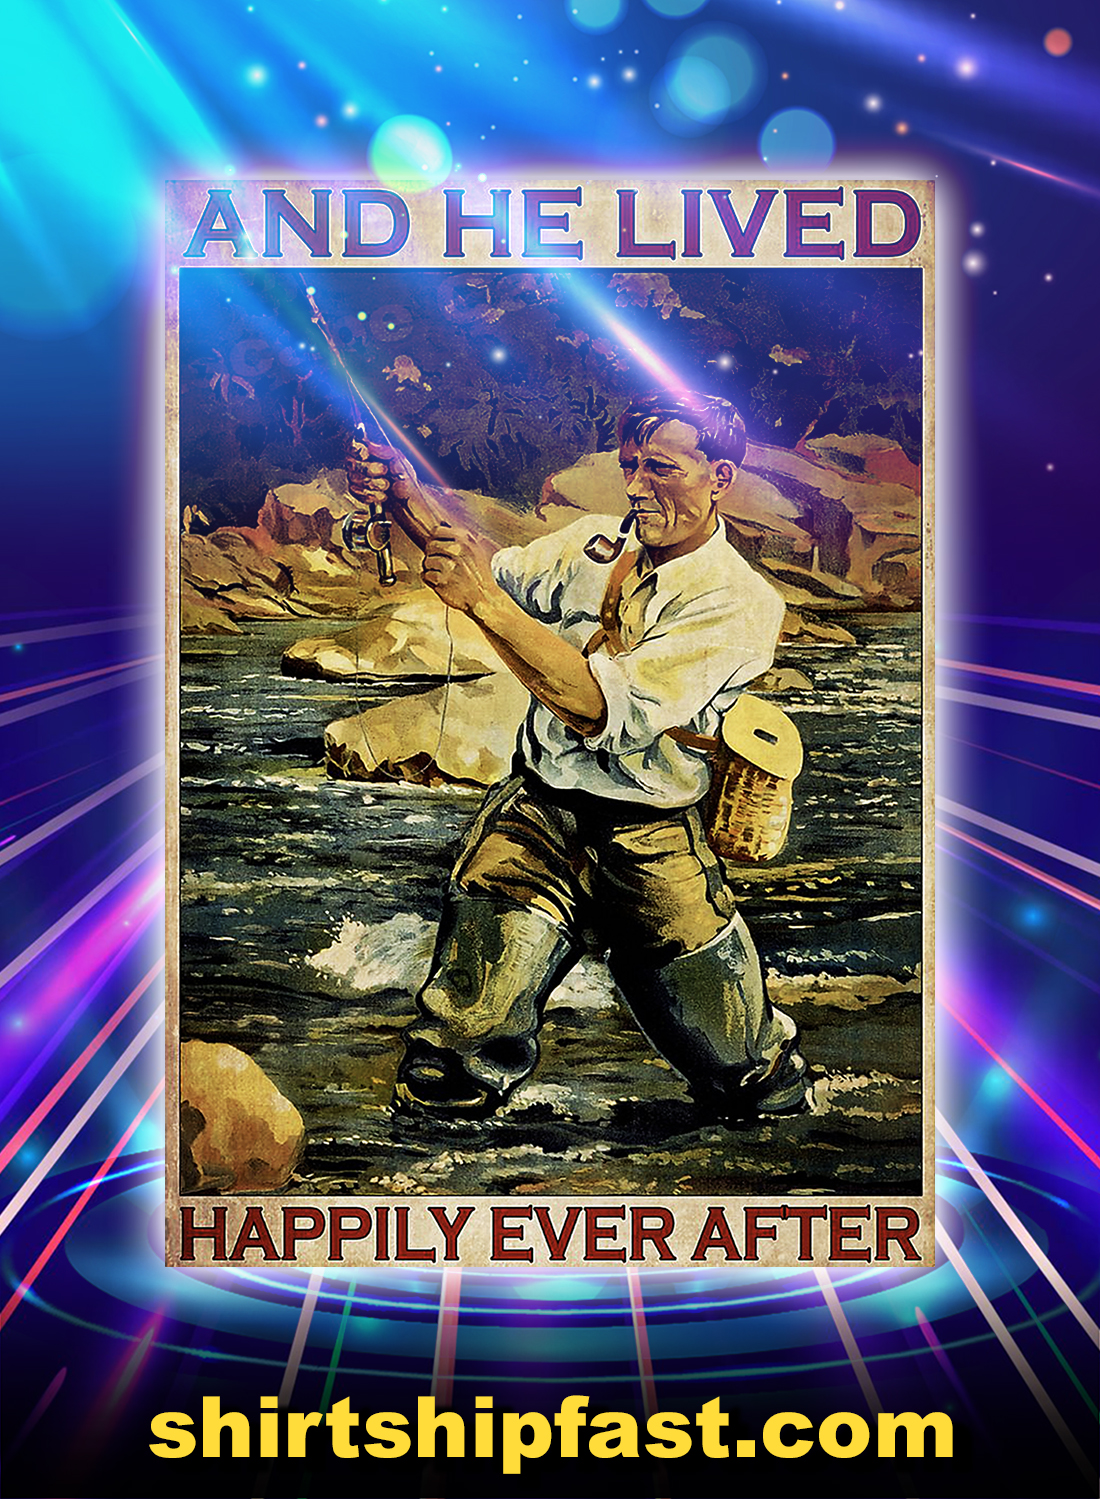 Fishing and he lived happily ever after poster - A4